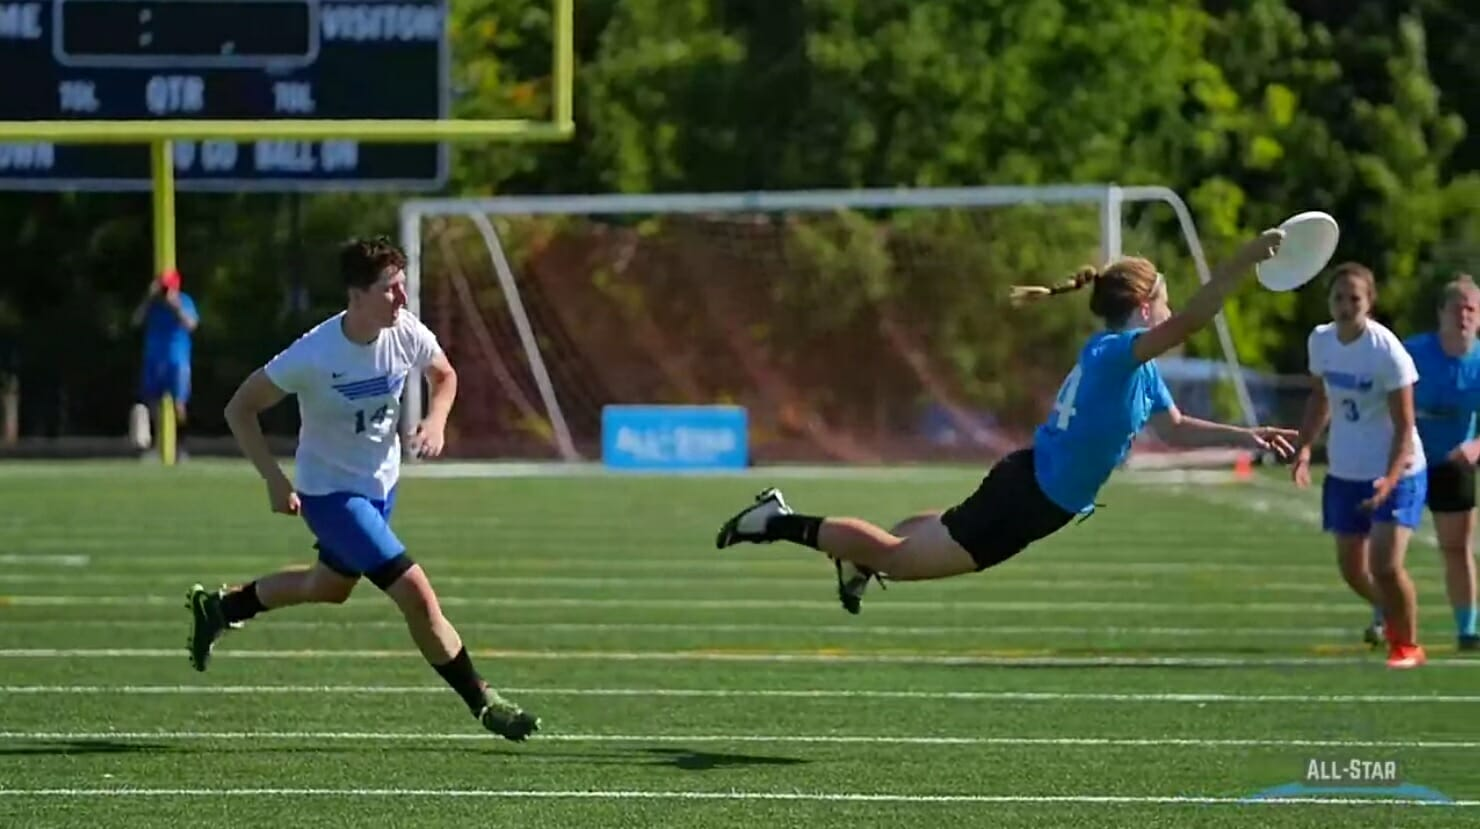 All-Star Bethany Kaylor lays out in Sunday's game against Portland Schwa. The play would make Sportscenter's Top 10.